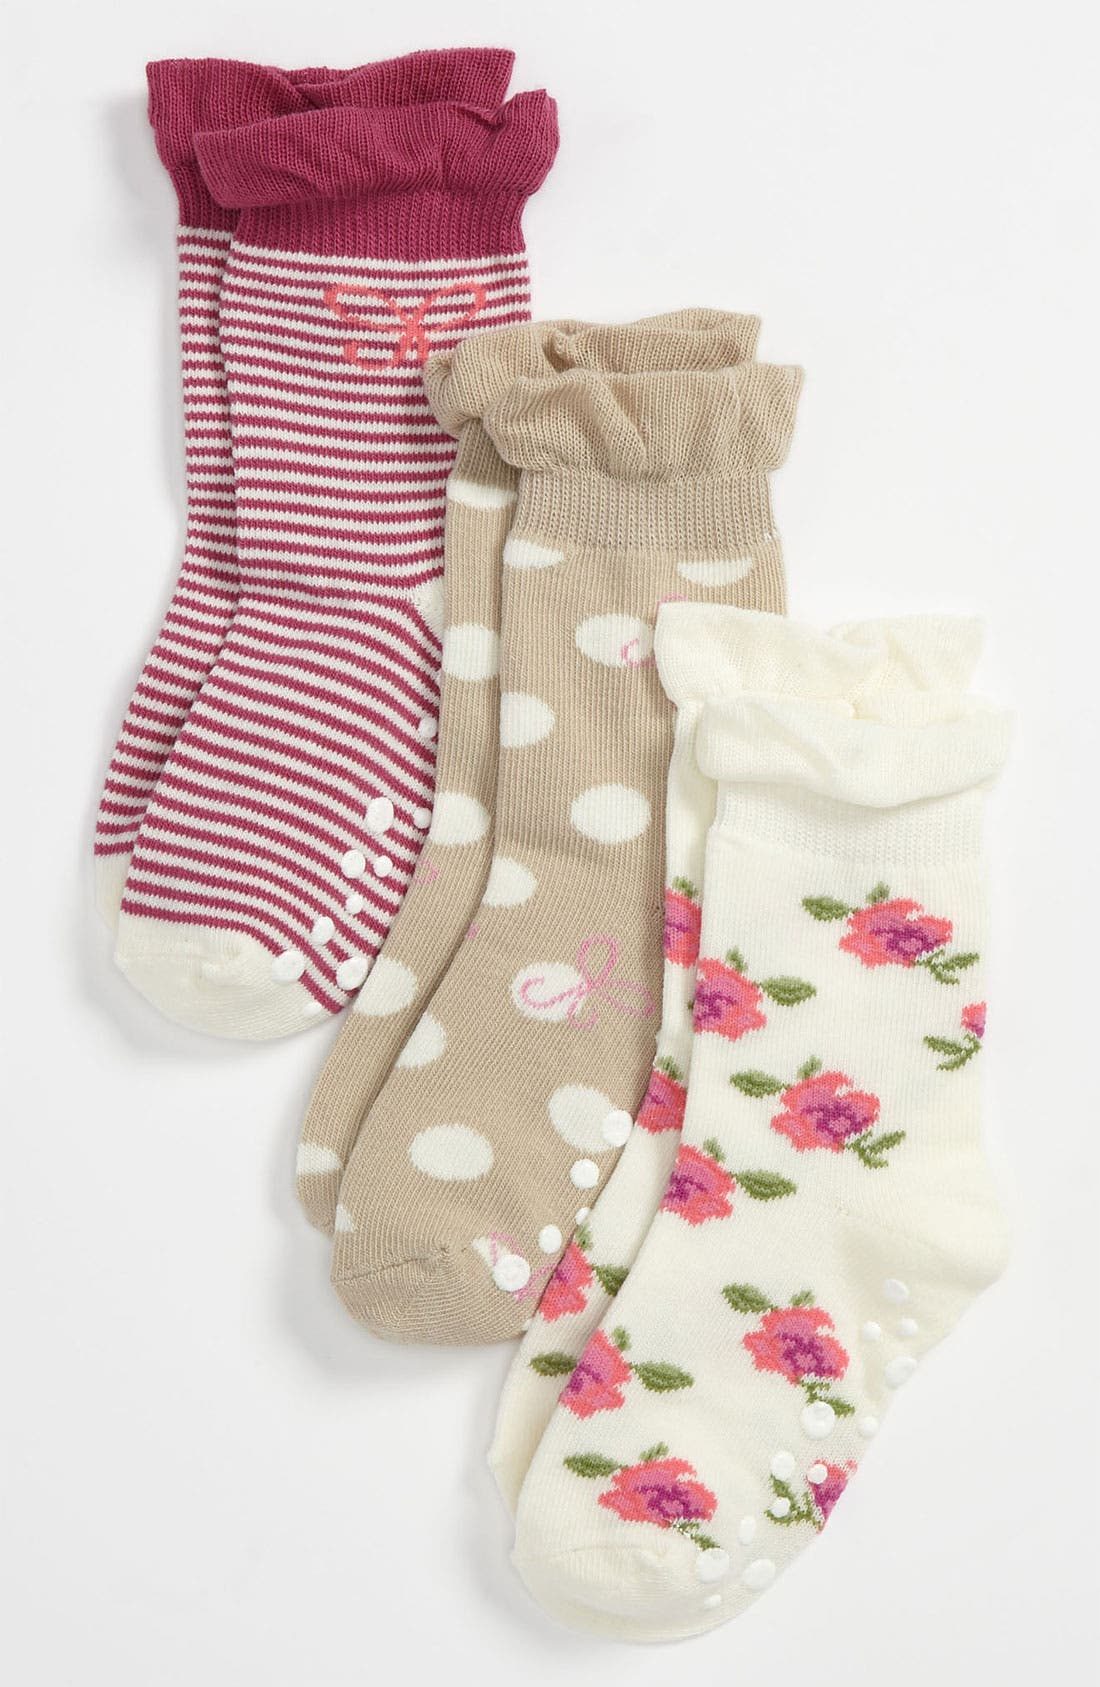 Main Image - Nordstrom 'Posey Toes' Socks (3-Pack) (Girls)